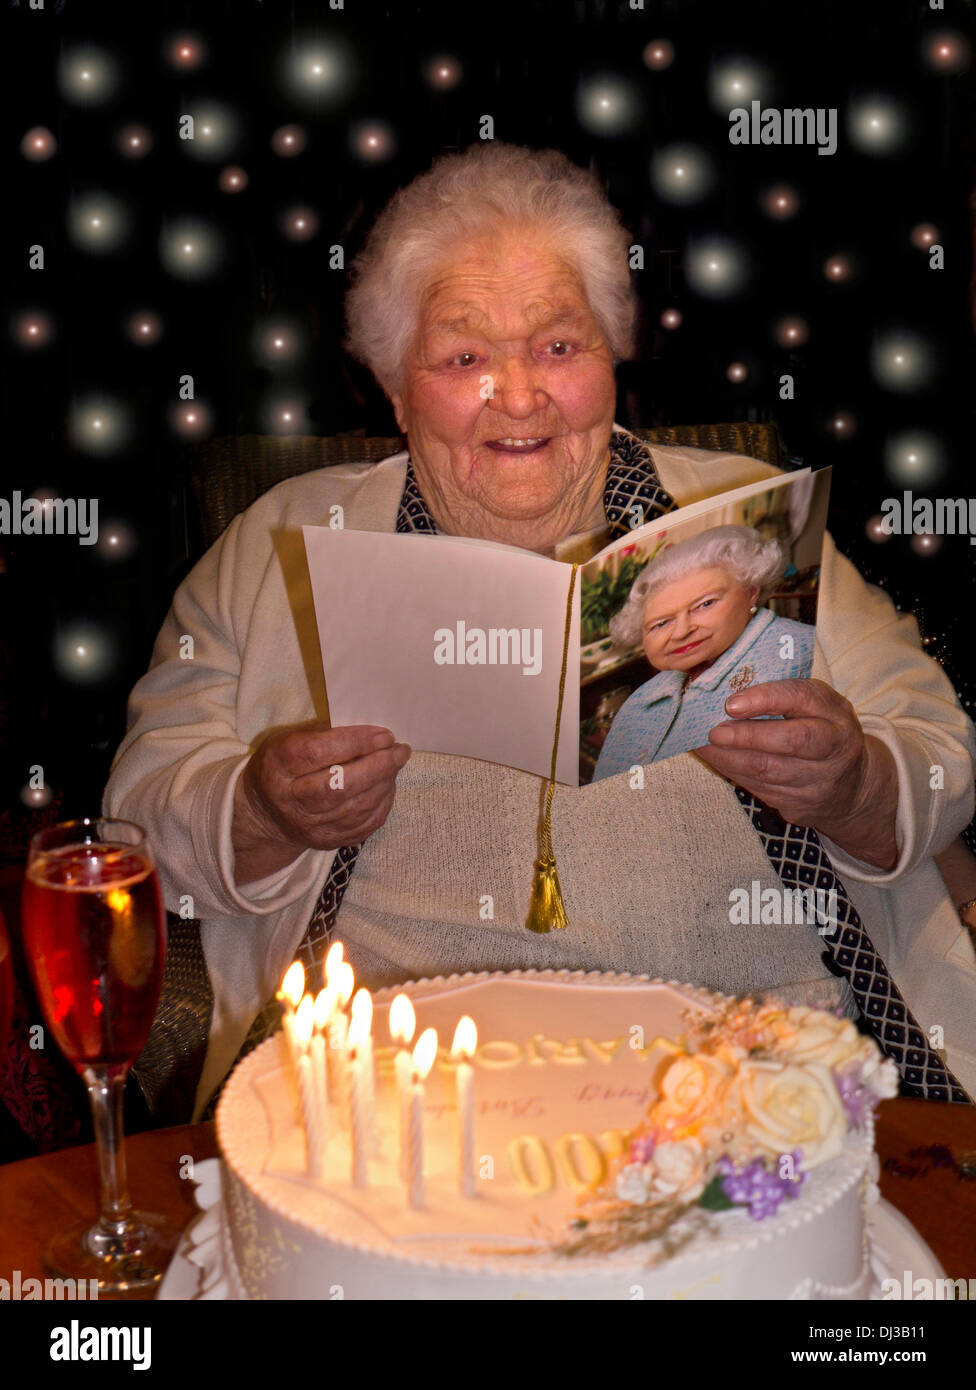 Happy Alert Elderly Lady At 100 Years Of Age With Her Birthday Cake And The Traditional